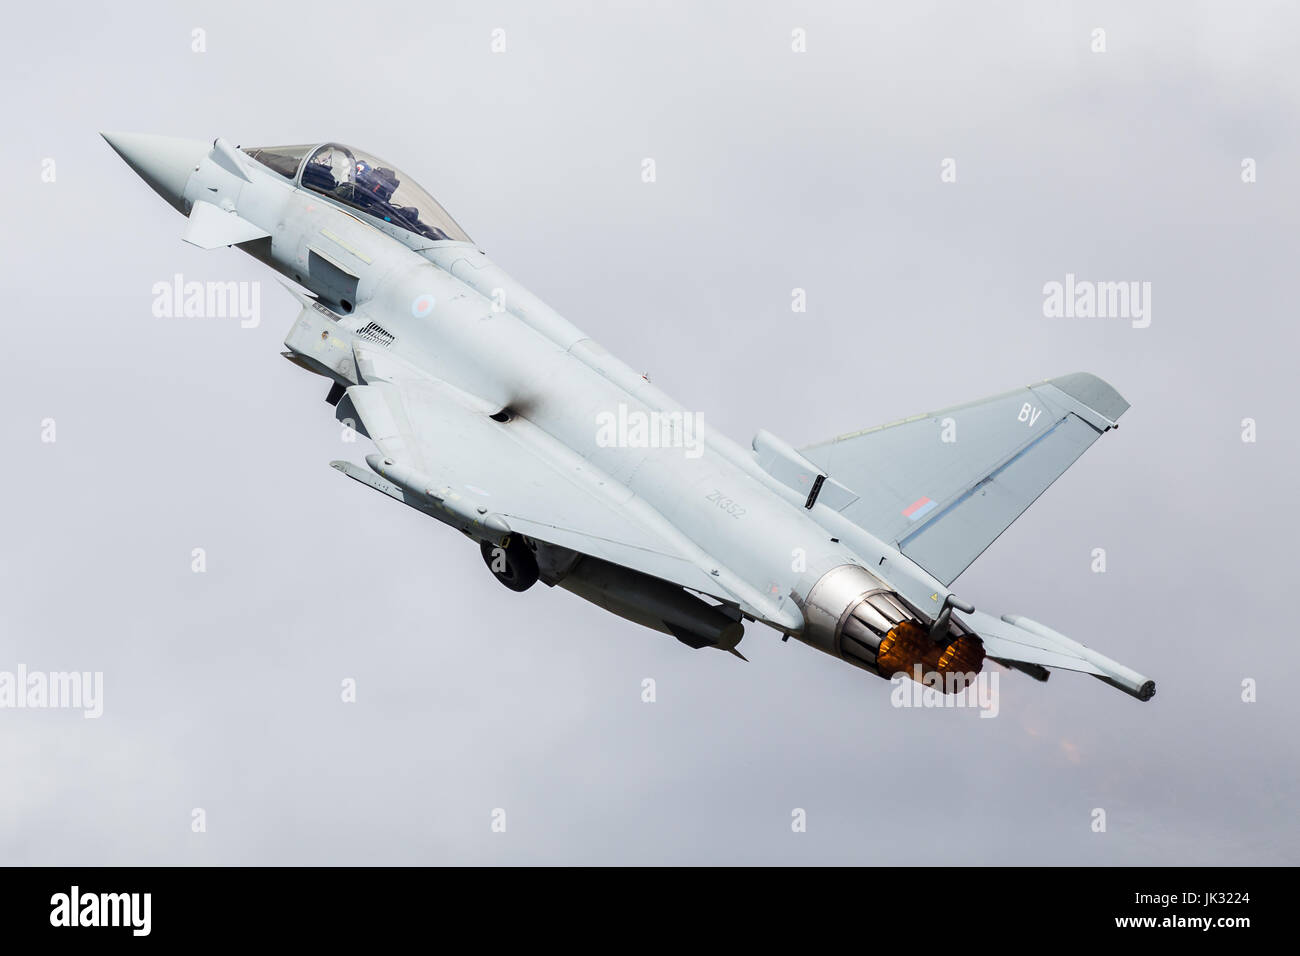 RAF Typhoon FGR.4 climbs into the sky at the 2017 Royal International Air Tattoo at RAF Fairford in Gloucestershire. Stock Photo